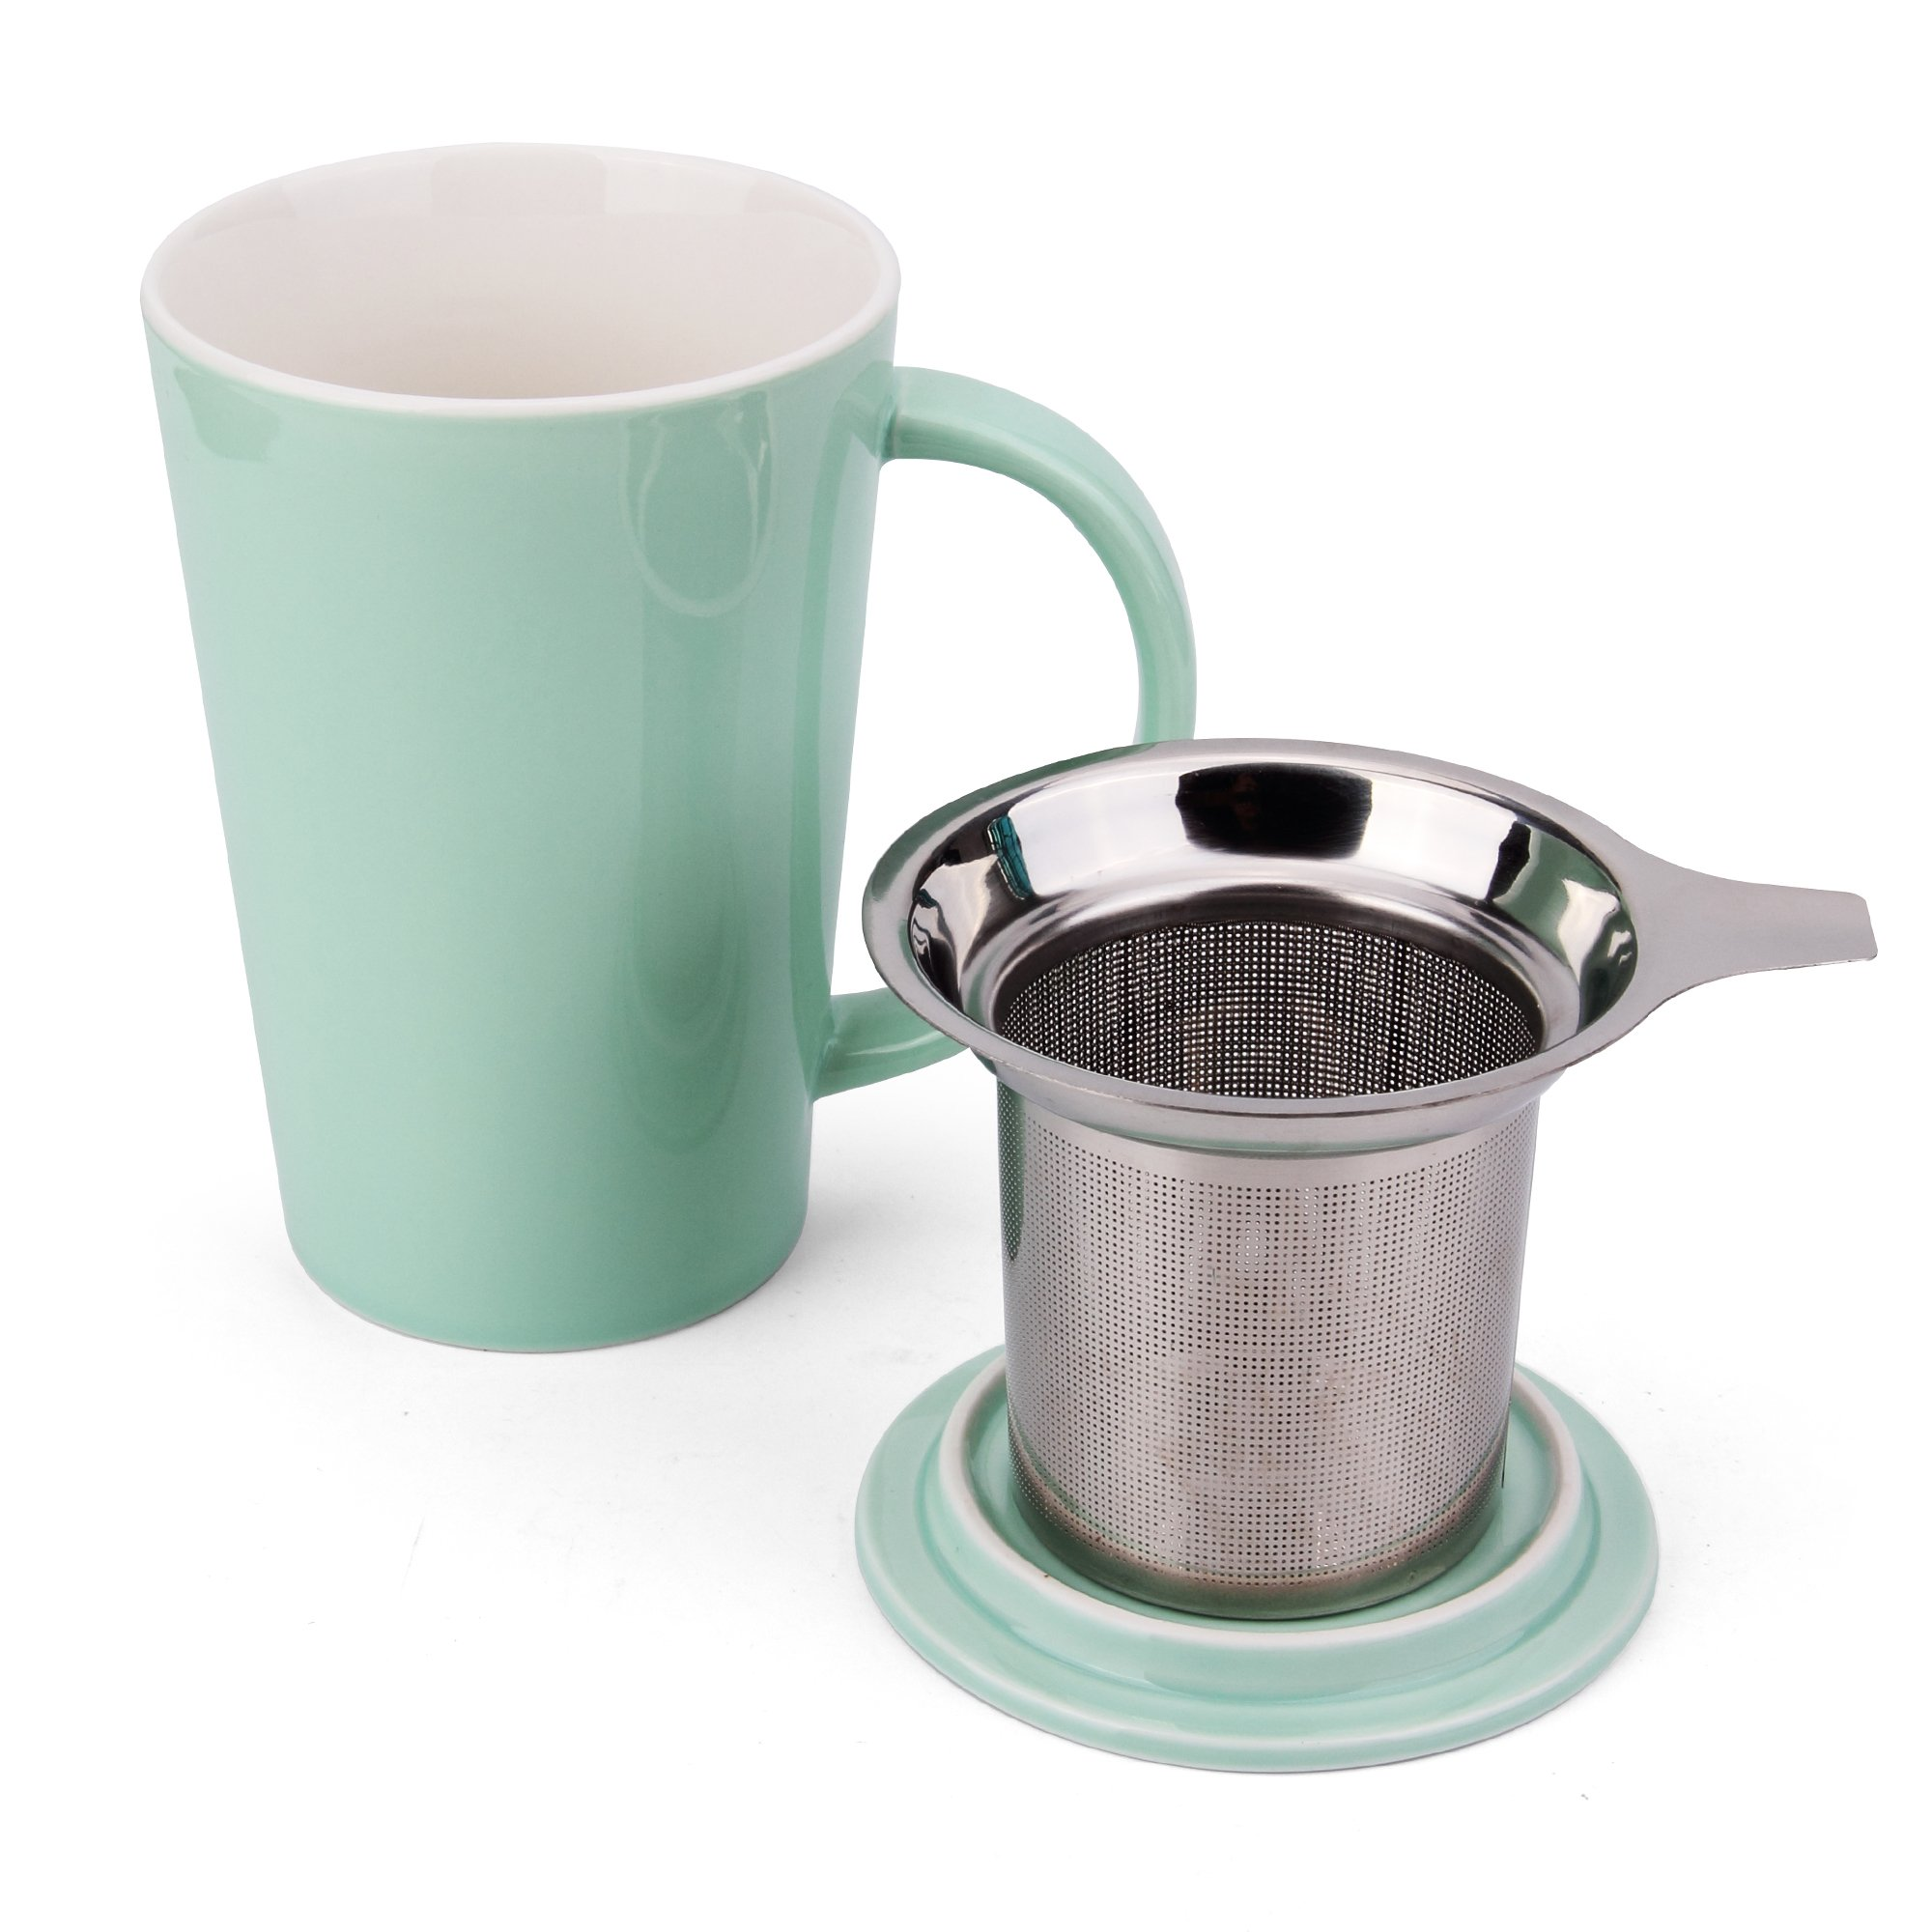 Fashion Simple Style Tea Mug with Infuser and Lid 14 OZ (Mint Green set of 1)